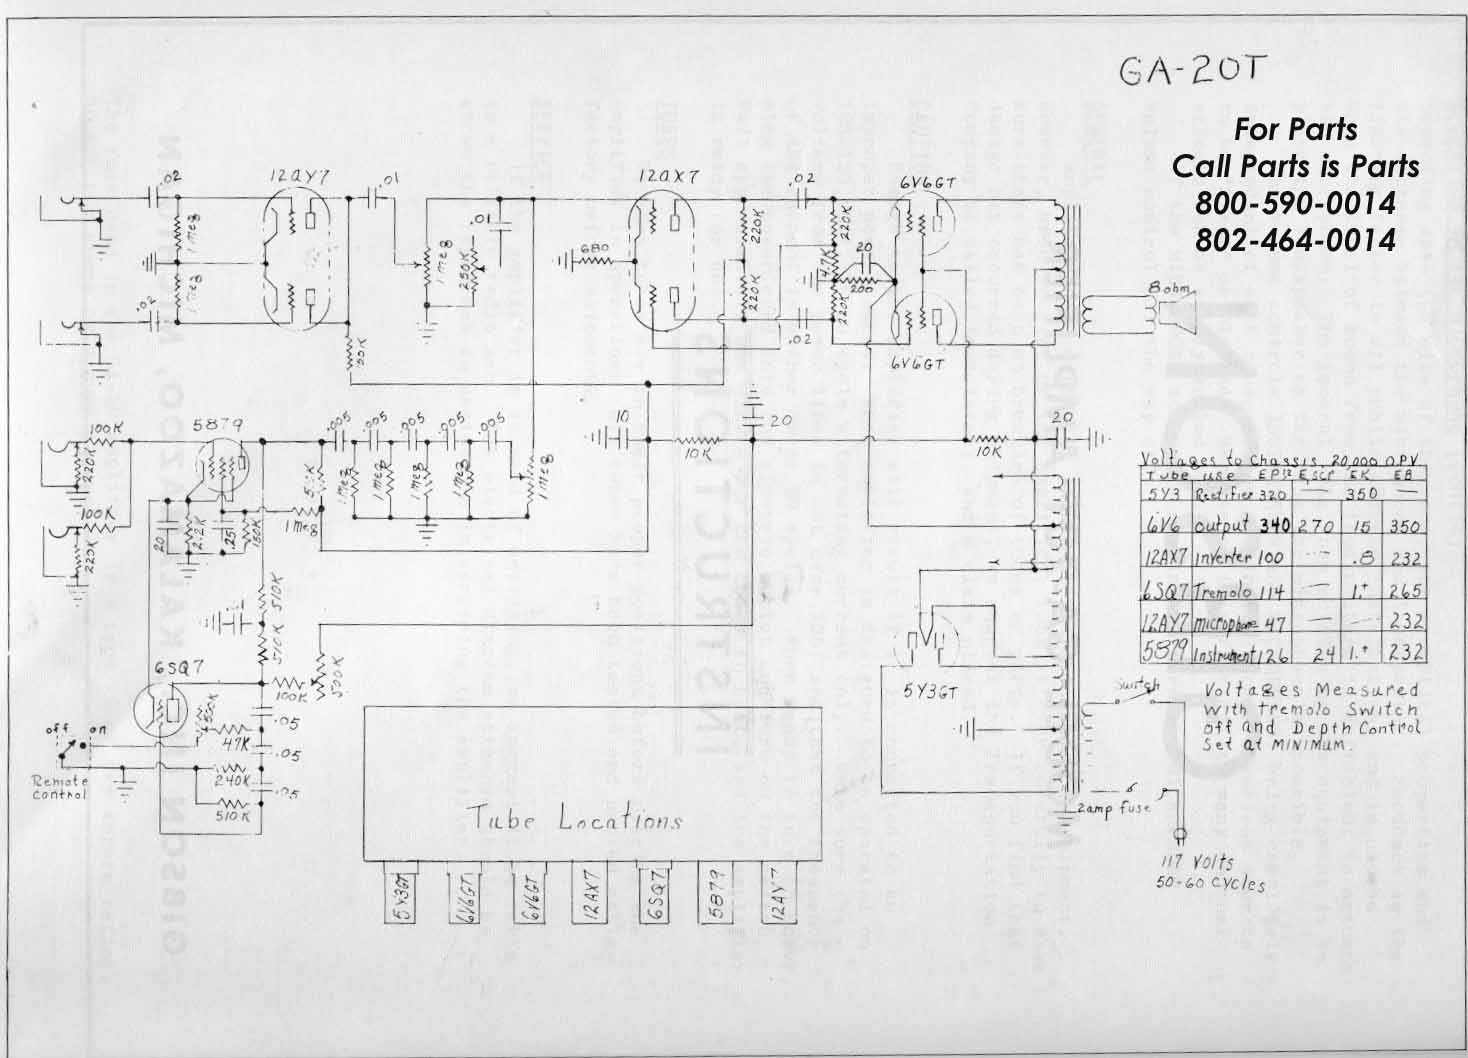 Gibson Garage Amps Wiring Diagram For 1961 Ford Comet And Falcon 6 All Models Schematic